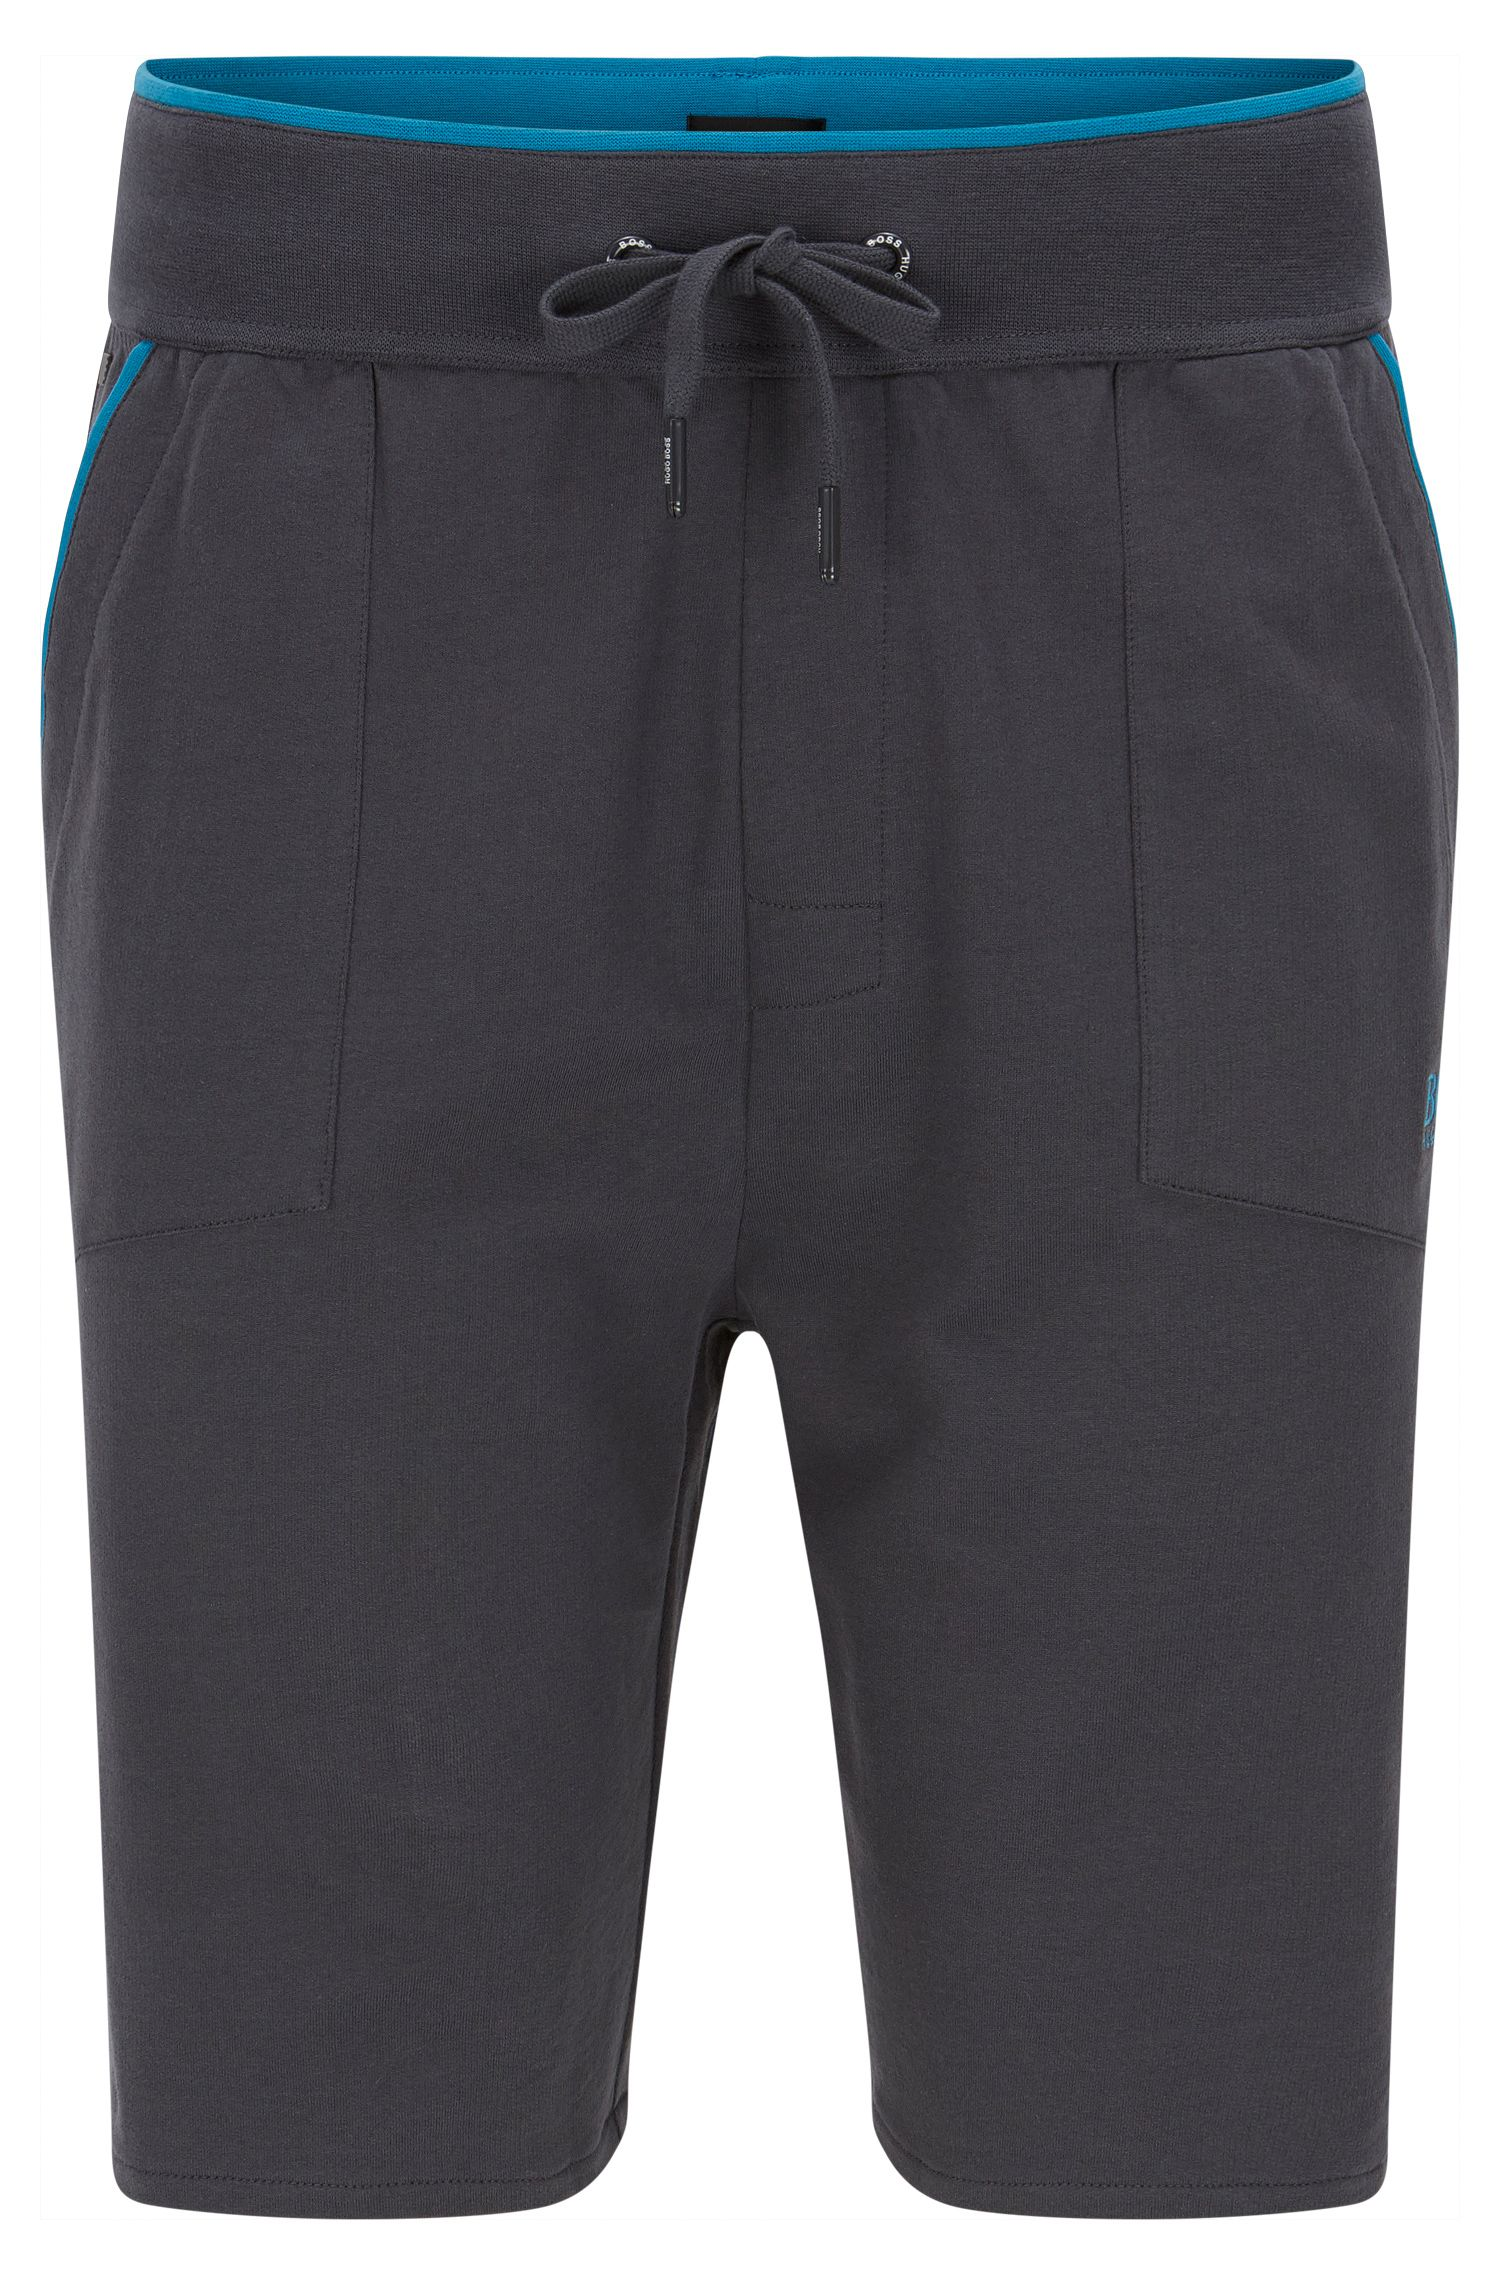 Jersey shorts with applied pockets and contrast piping